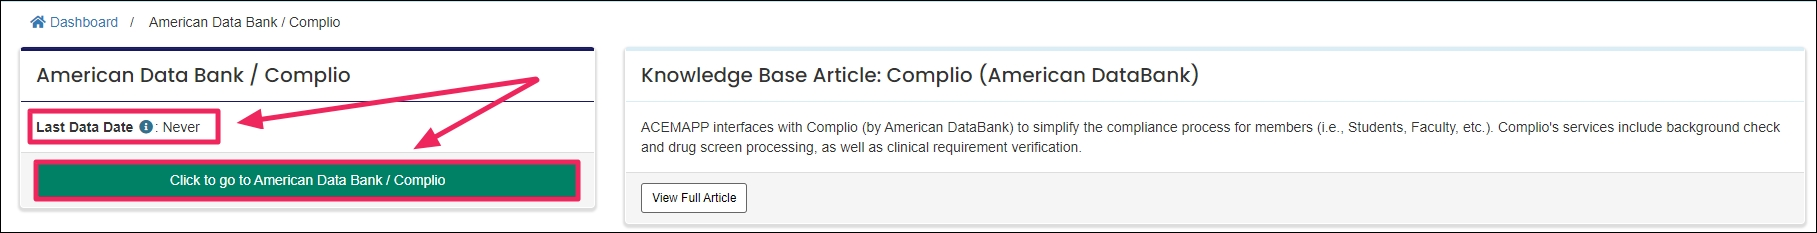 image screenshot of splash screen leave with arrows pointing to the last data date and click to go to Complio button